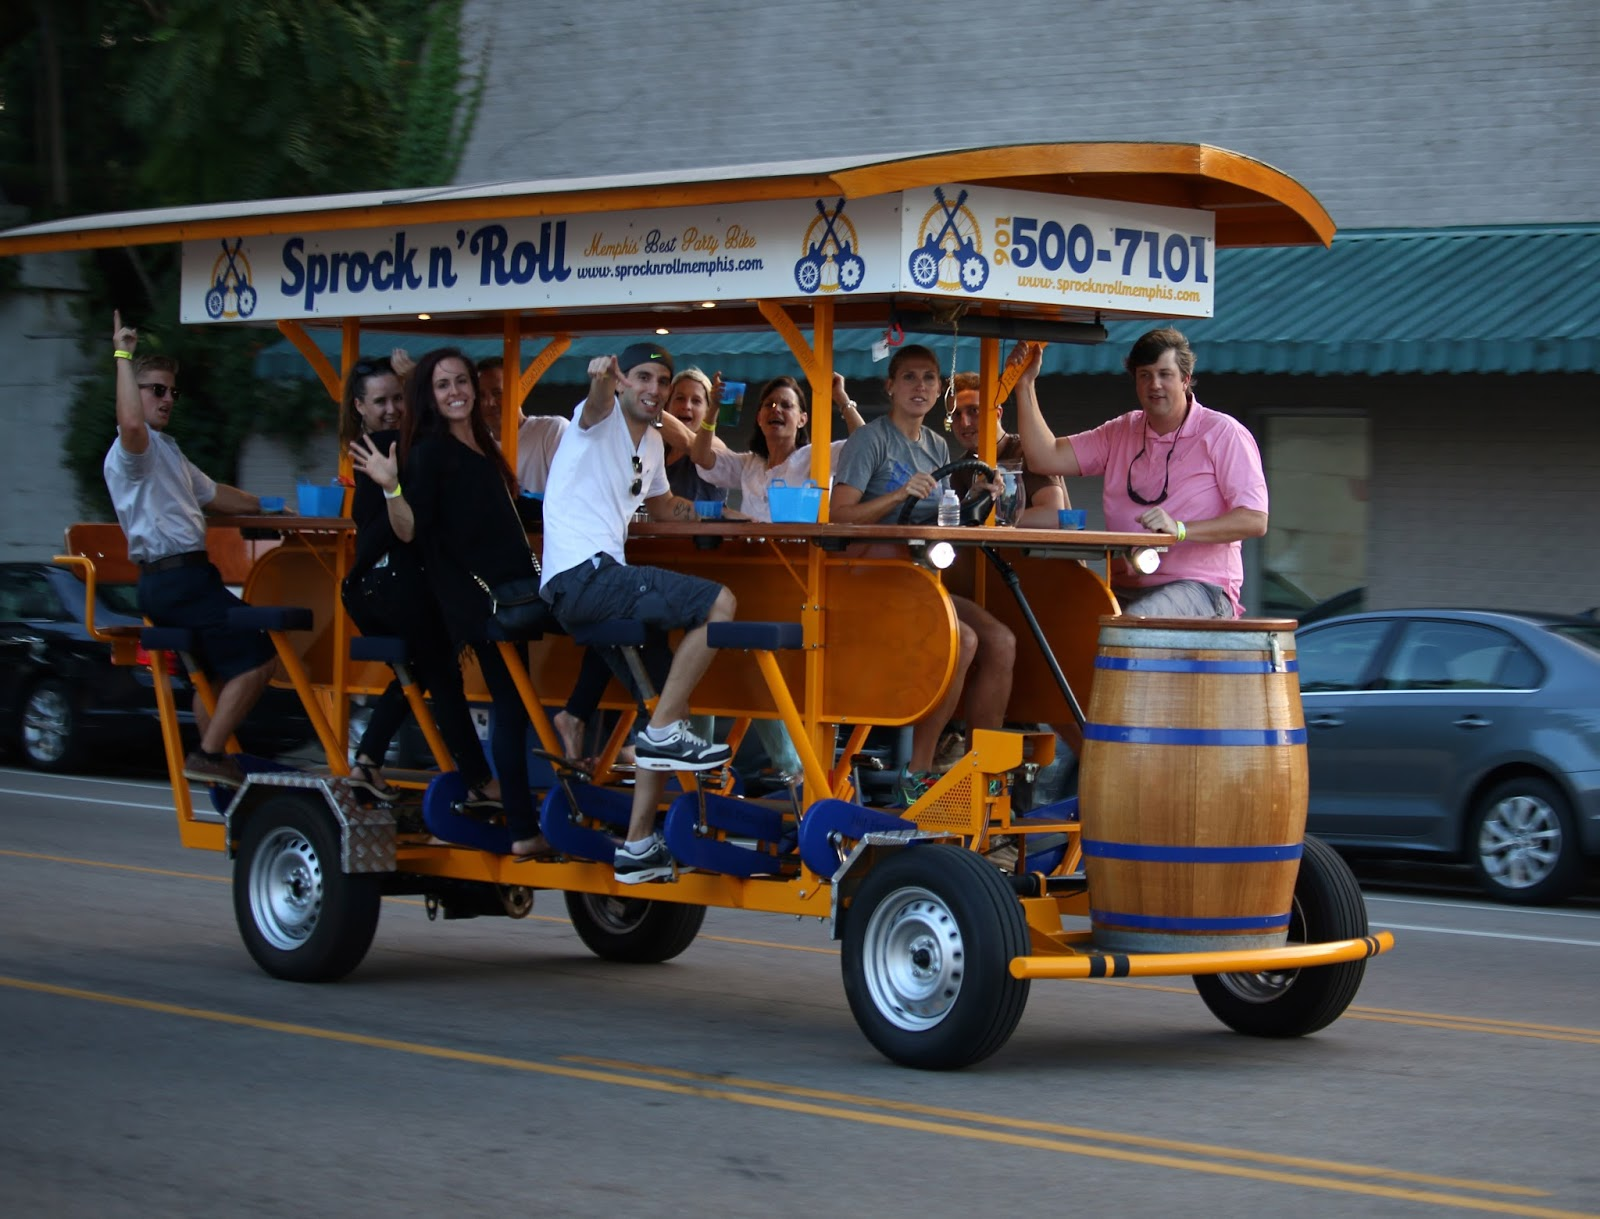 Memphis Cyclist Sprock N Roll Brings Parties And Bike Riding